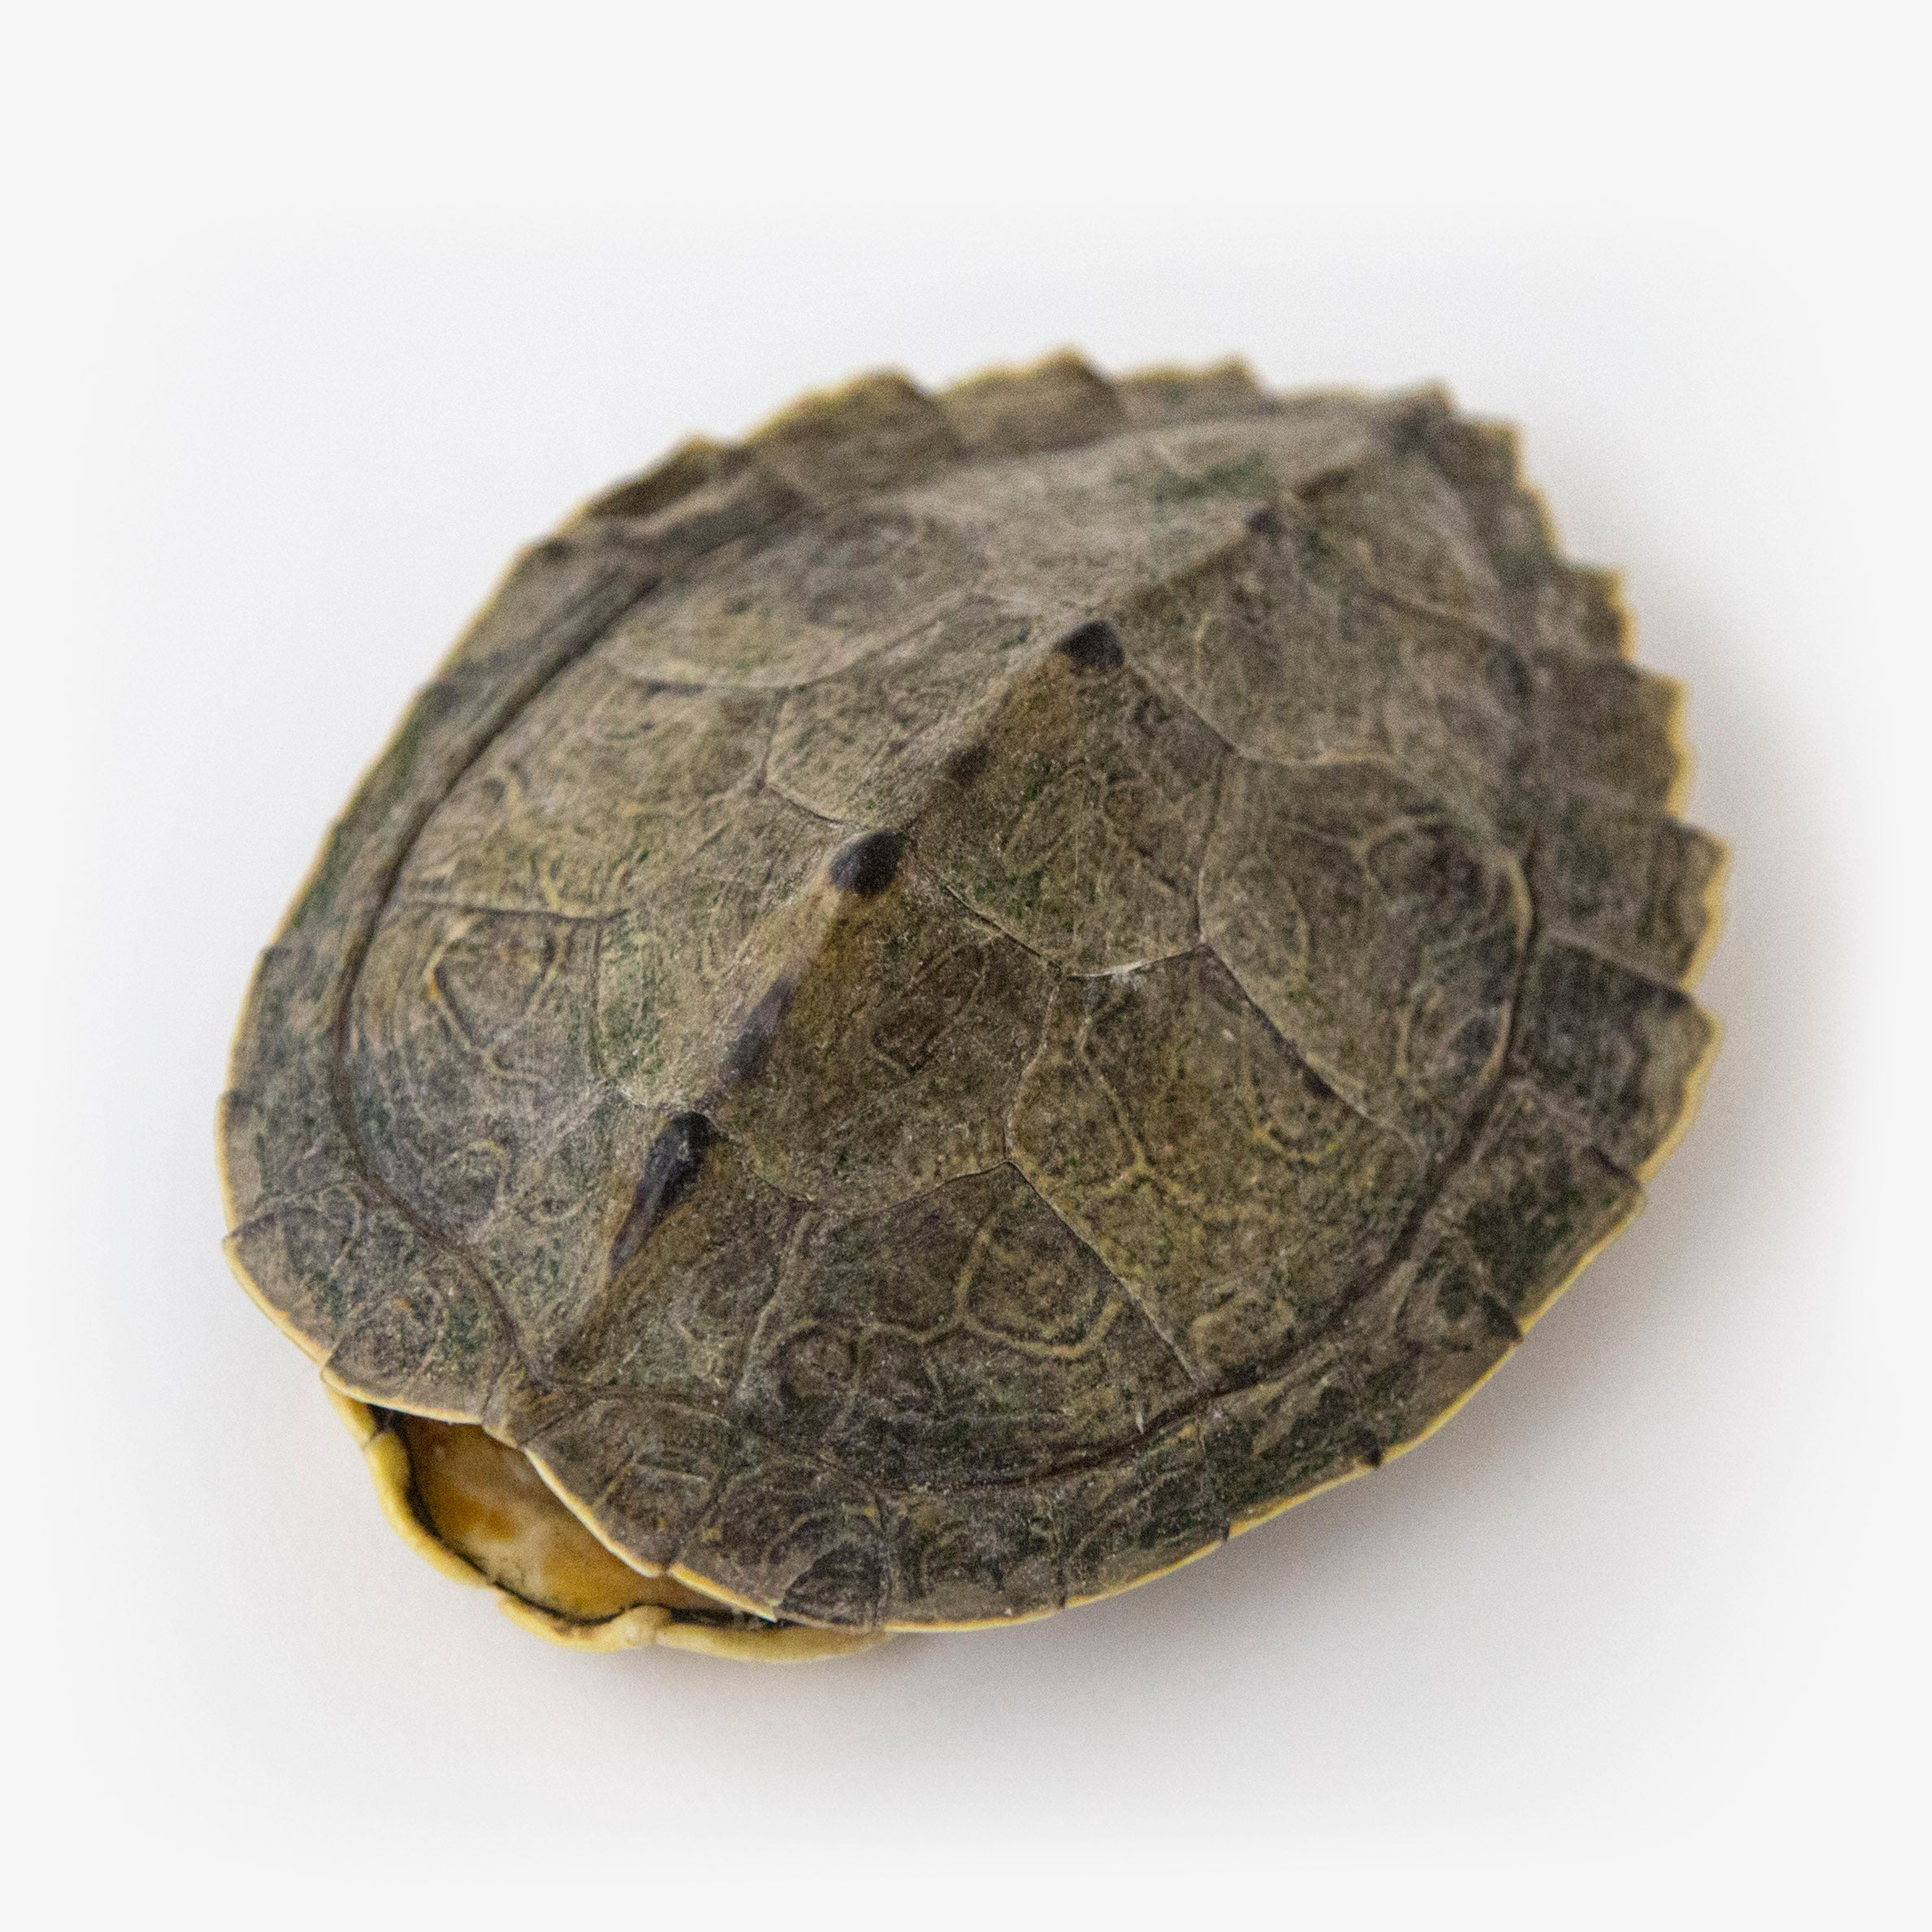 Small Map Turtle Shell